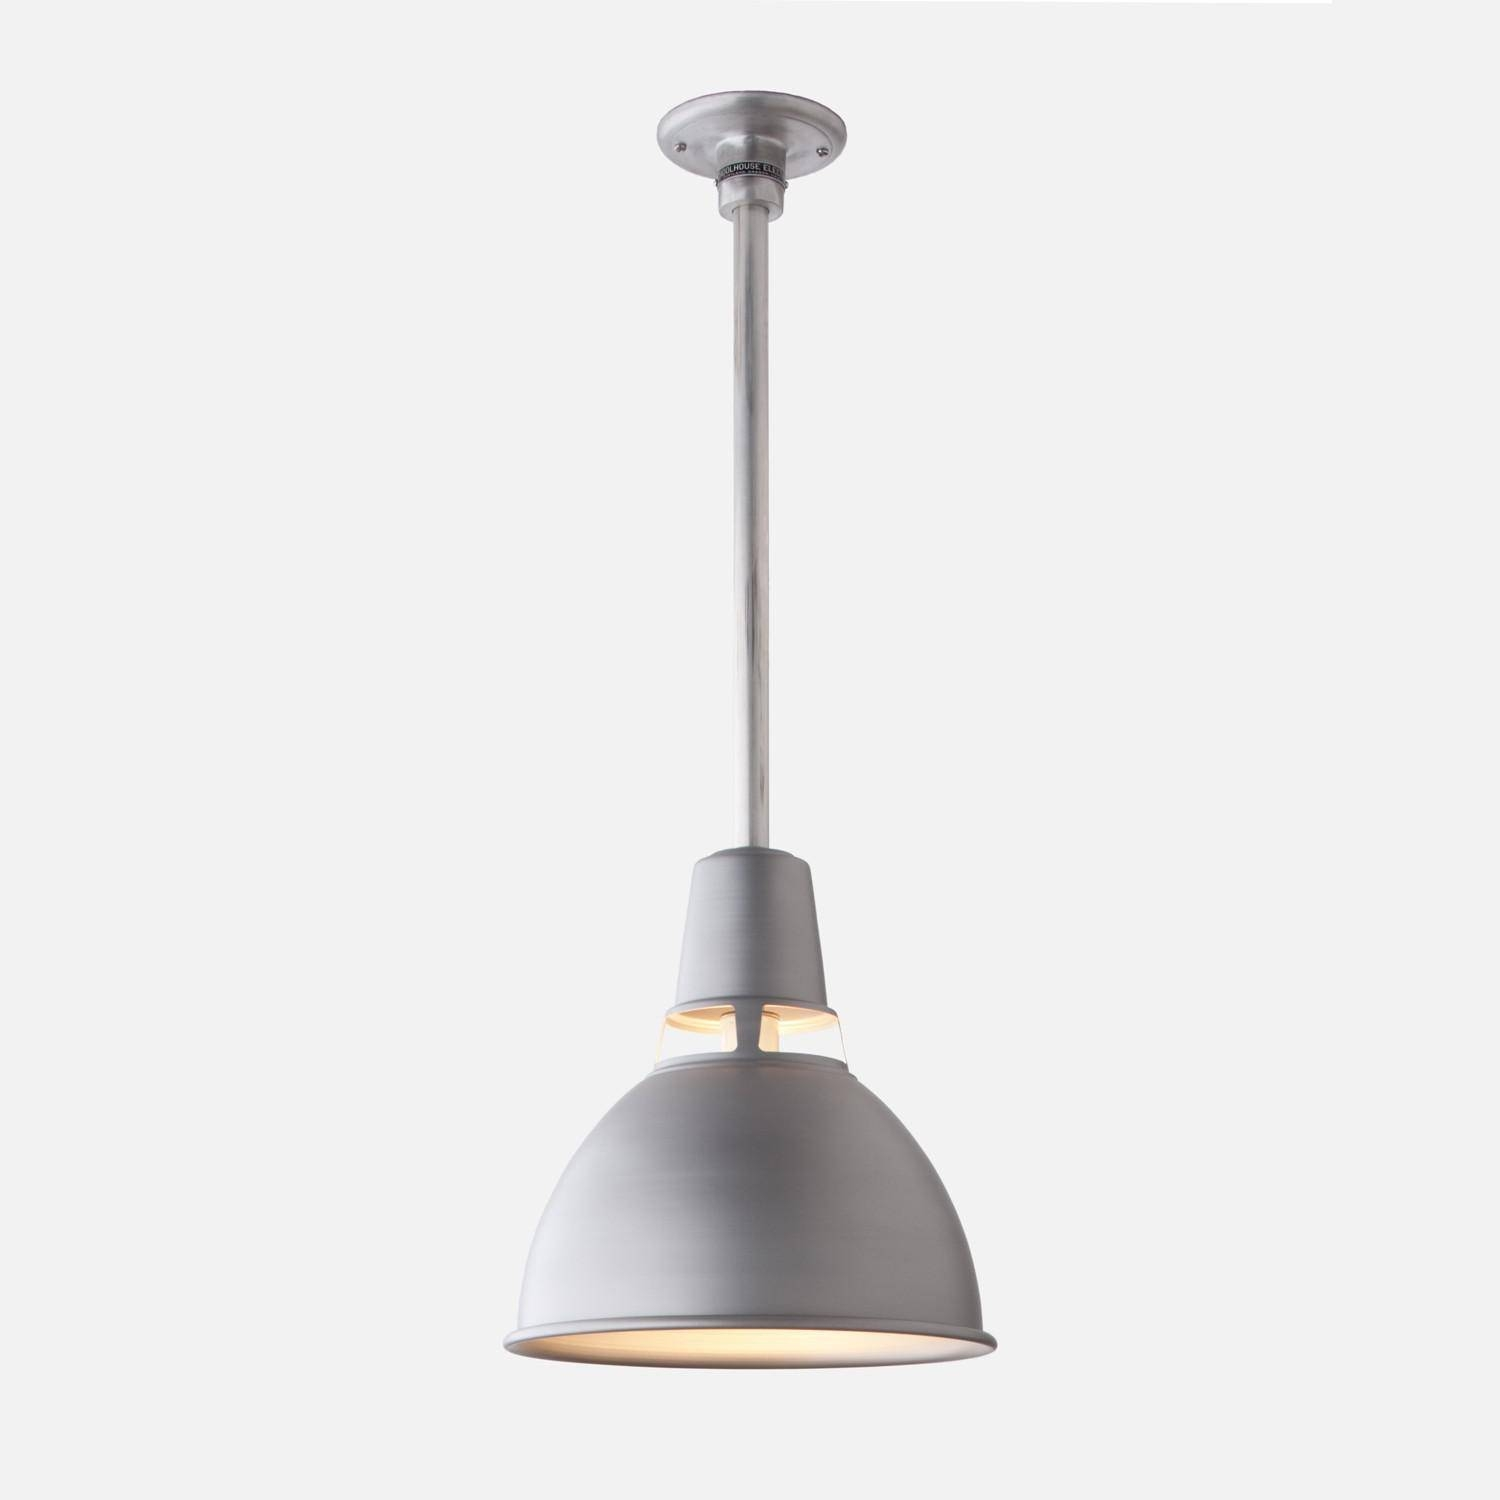 Awesome Commercial Pendant Light Fixtures 63 With Additional In Commercial Pendant Lights (View 1 of 15)